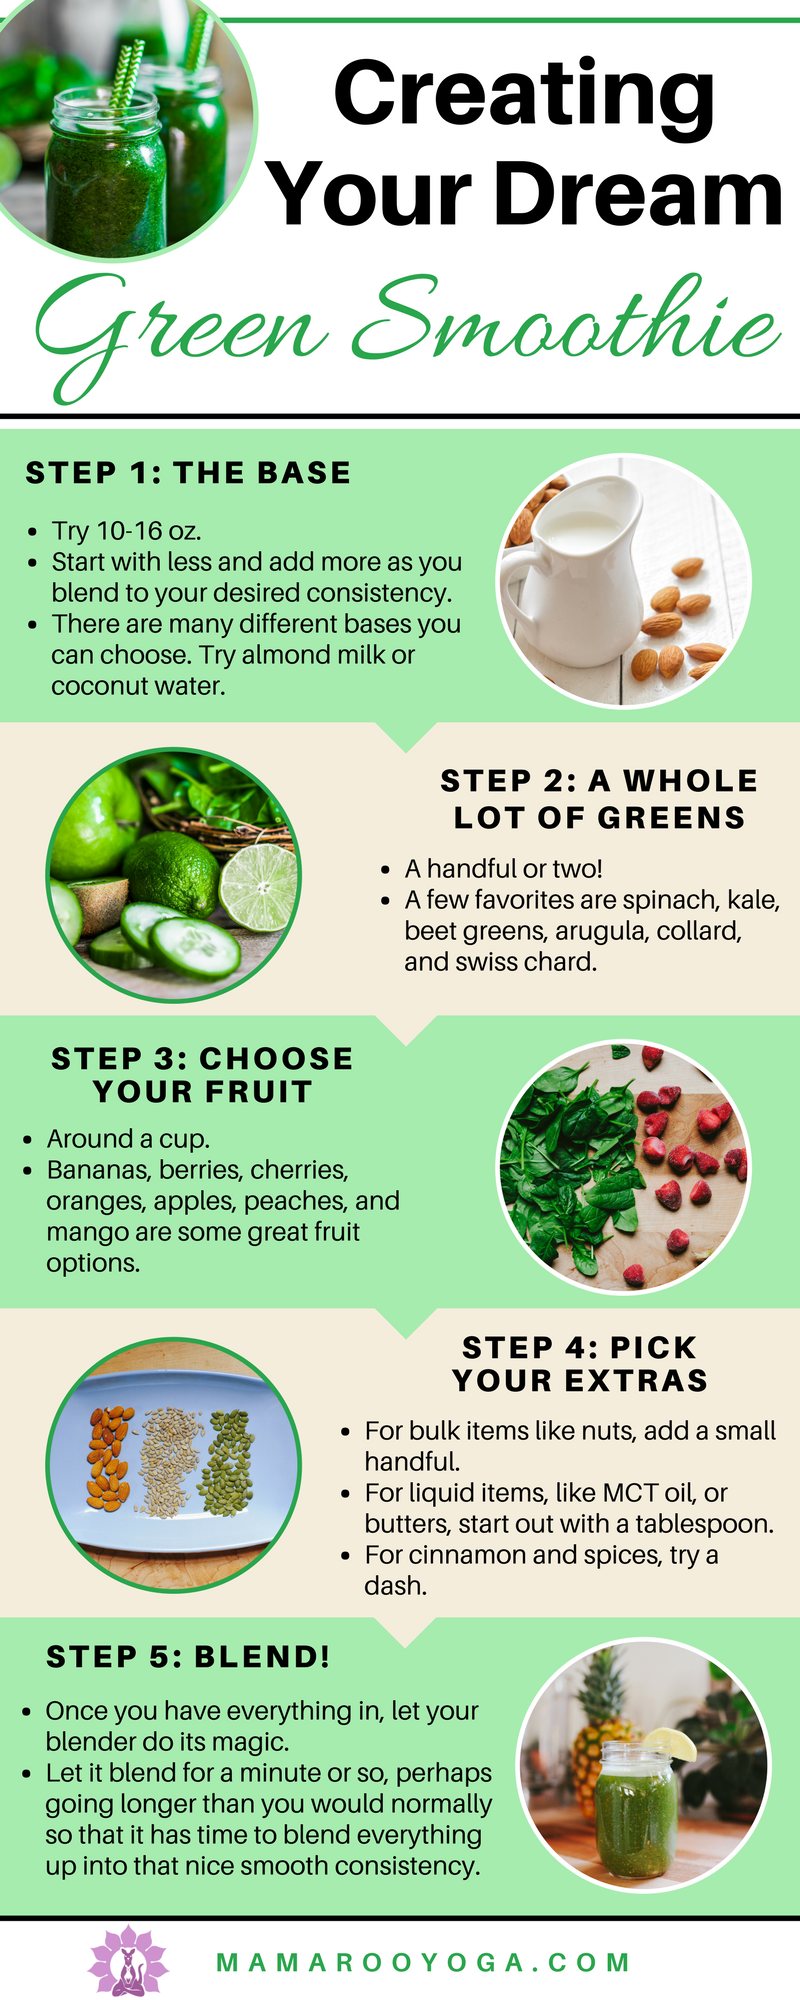 Creating Your Dream Green Smoothie Graphic